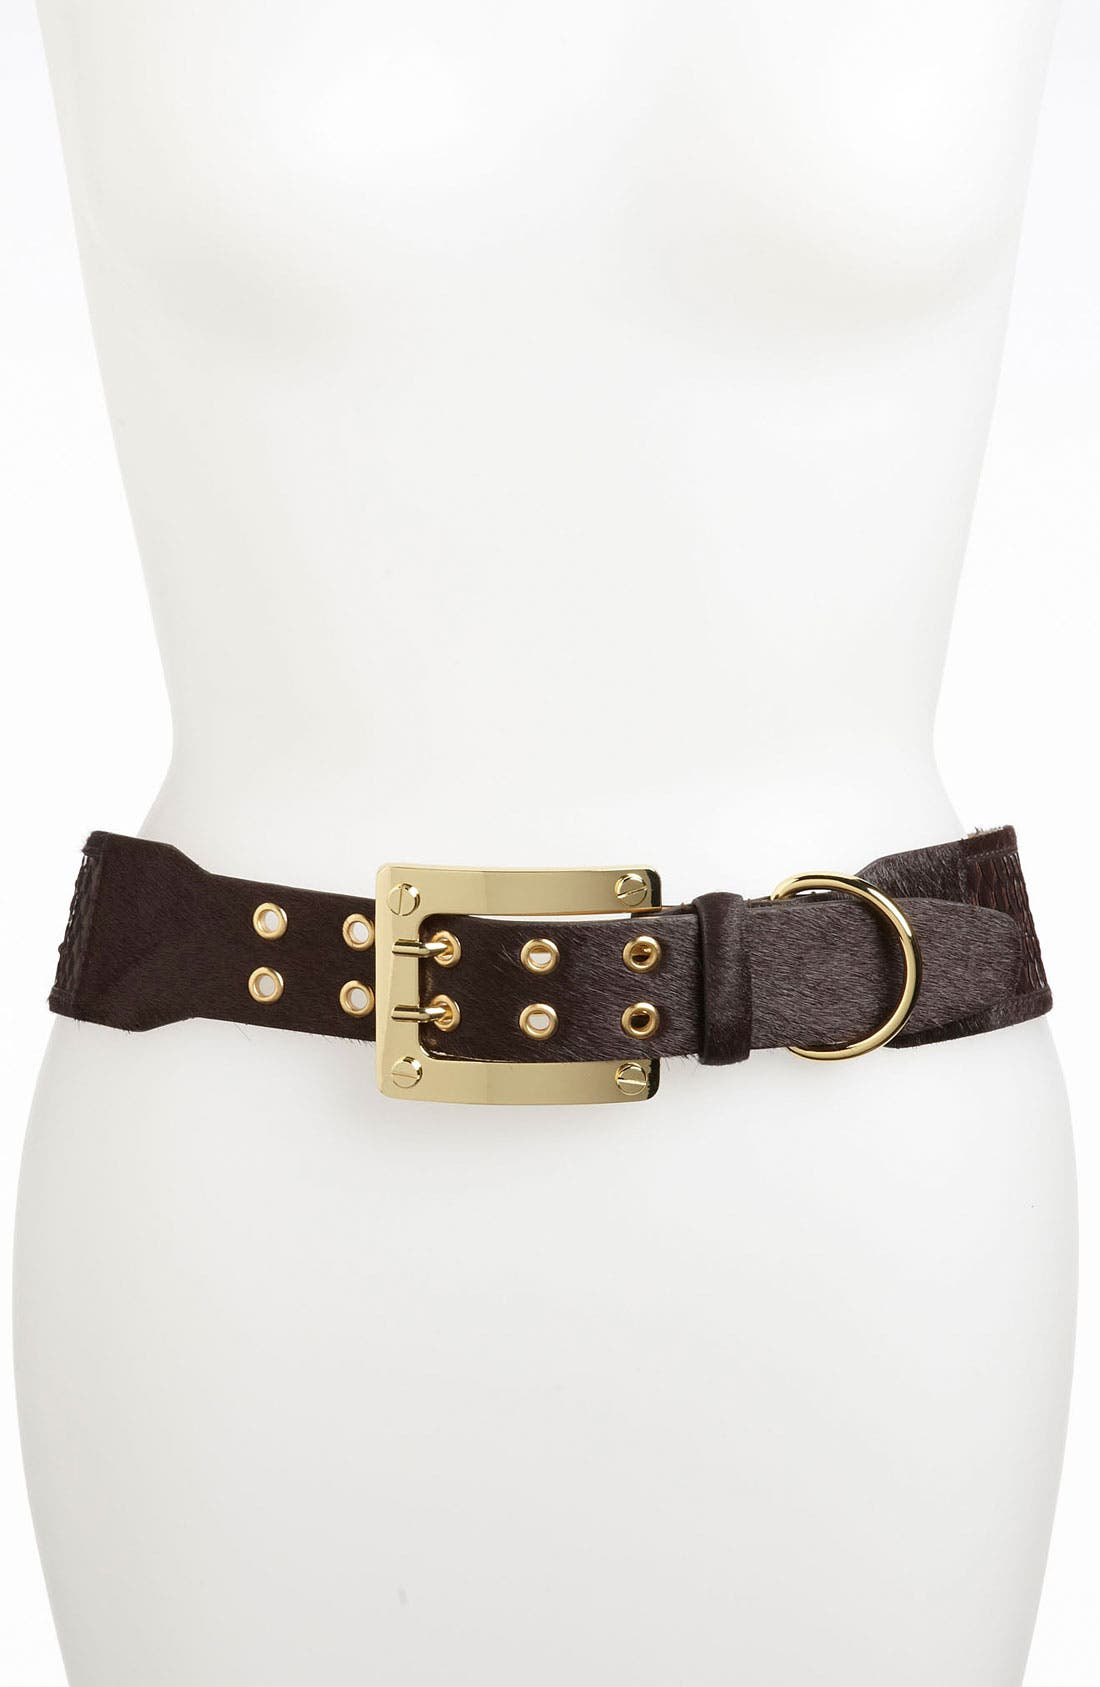 Main Image - Rachel Zoe Calf Hair Belt